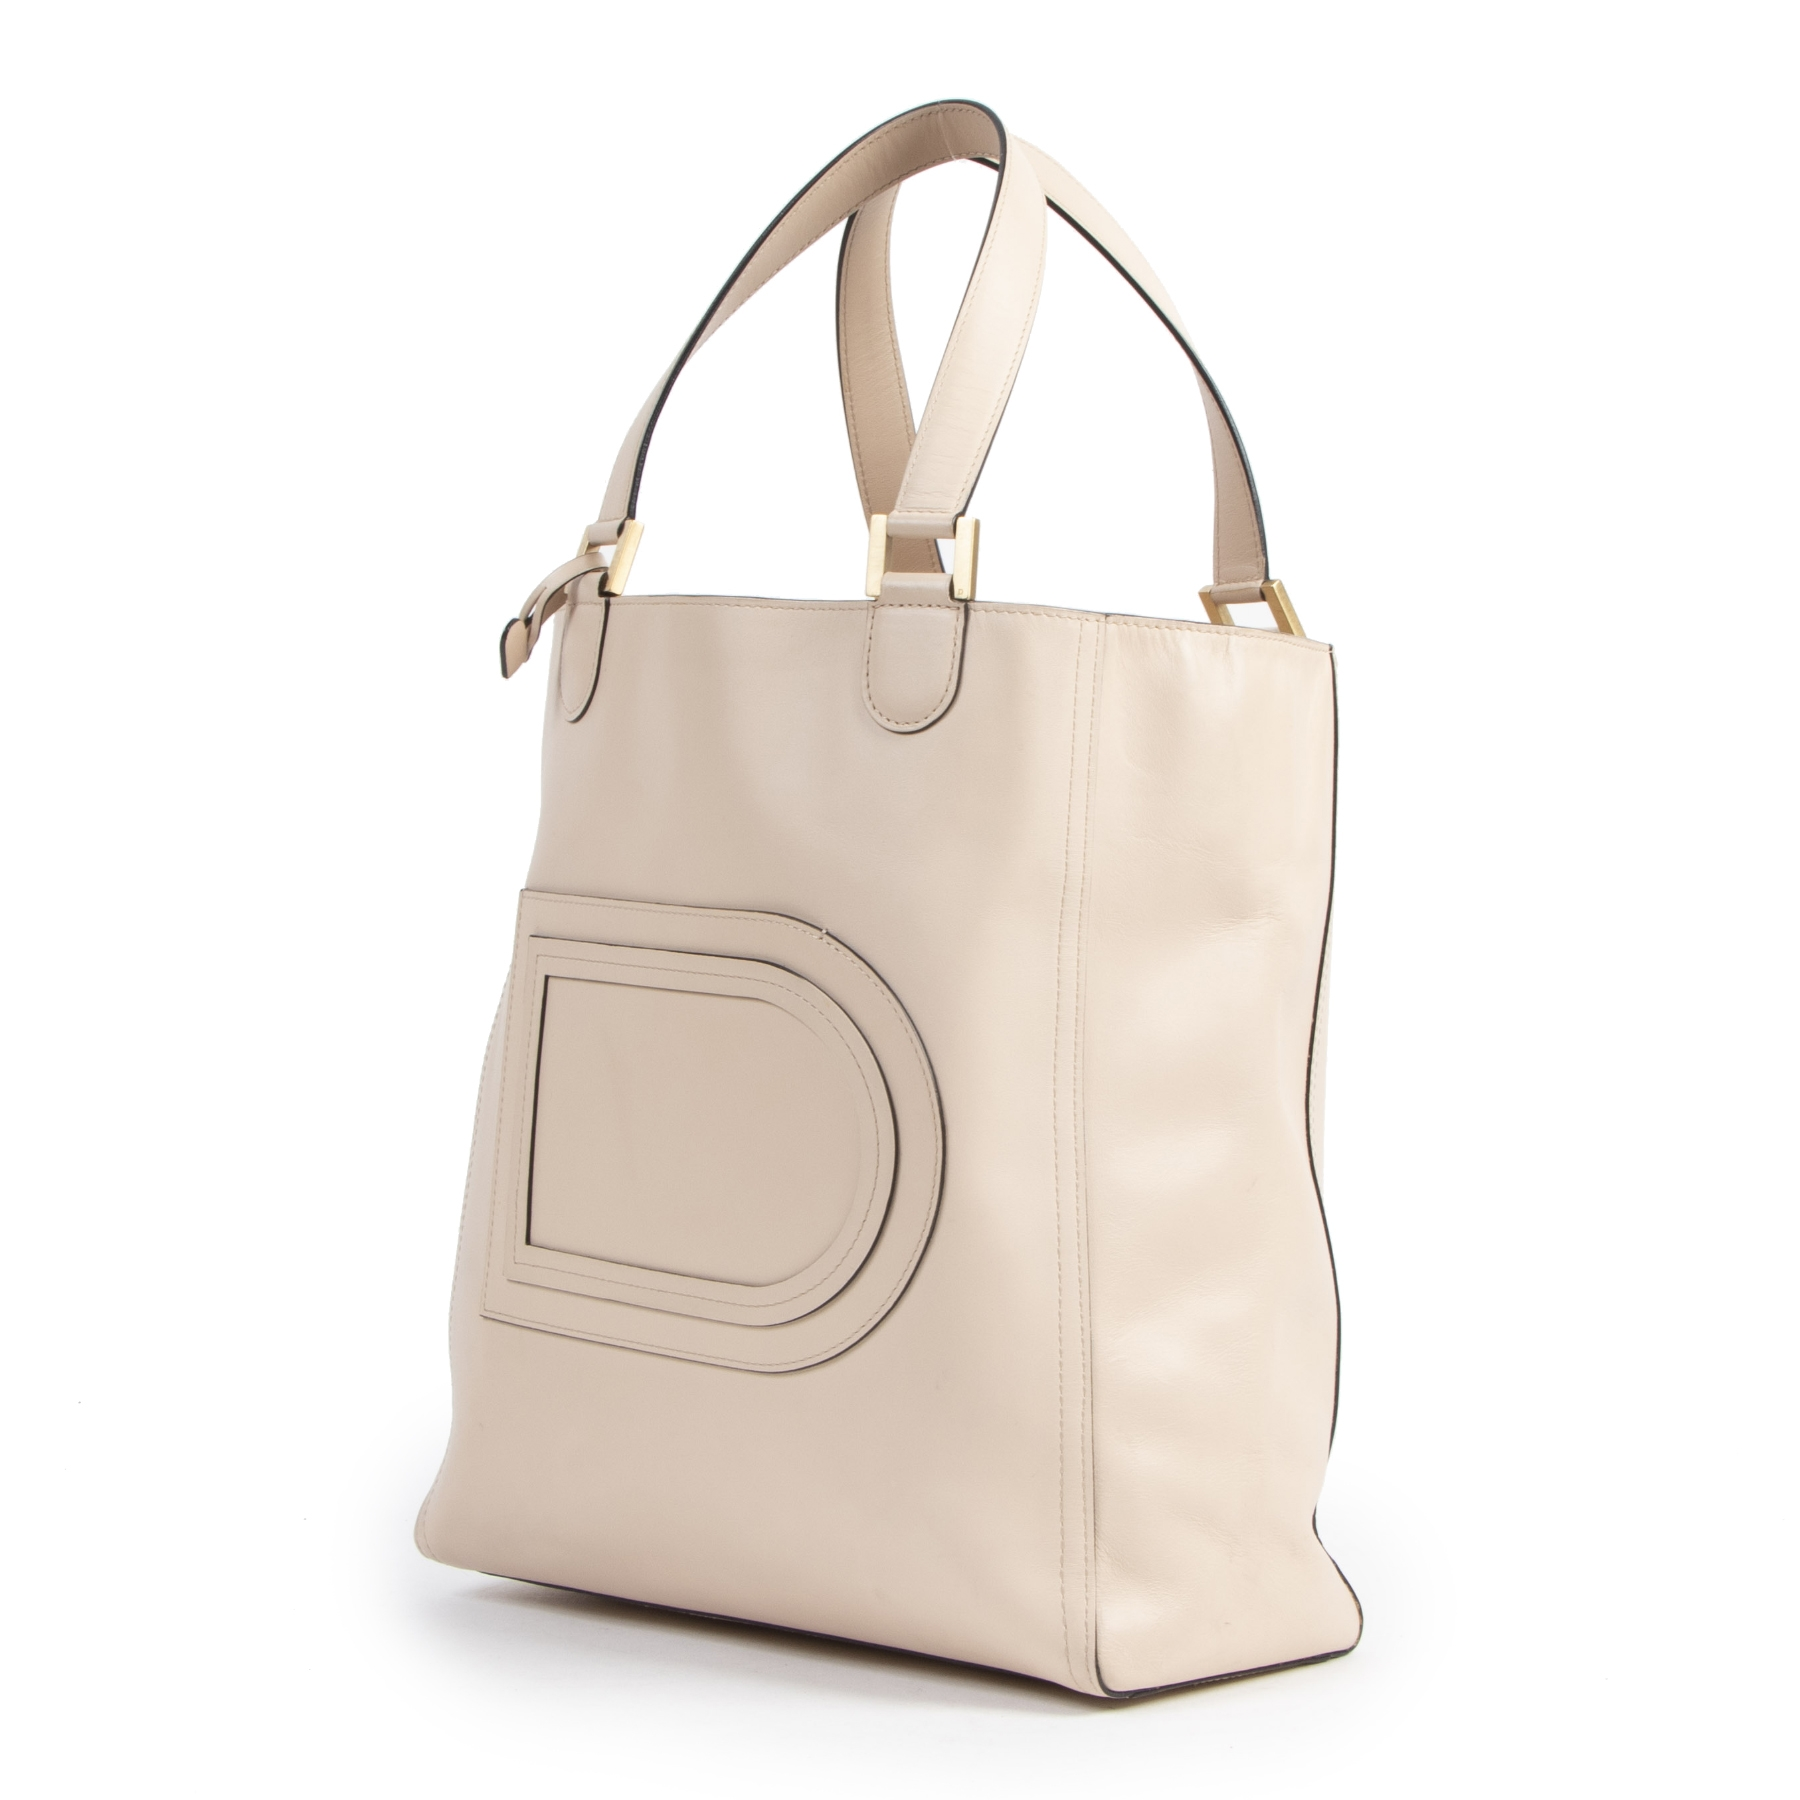 Delvaux Blush Pink Tote Bag